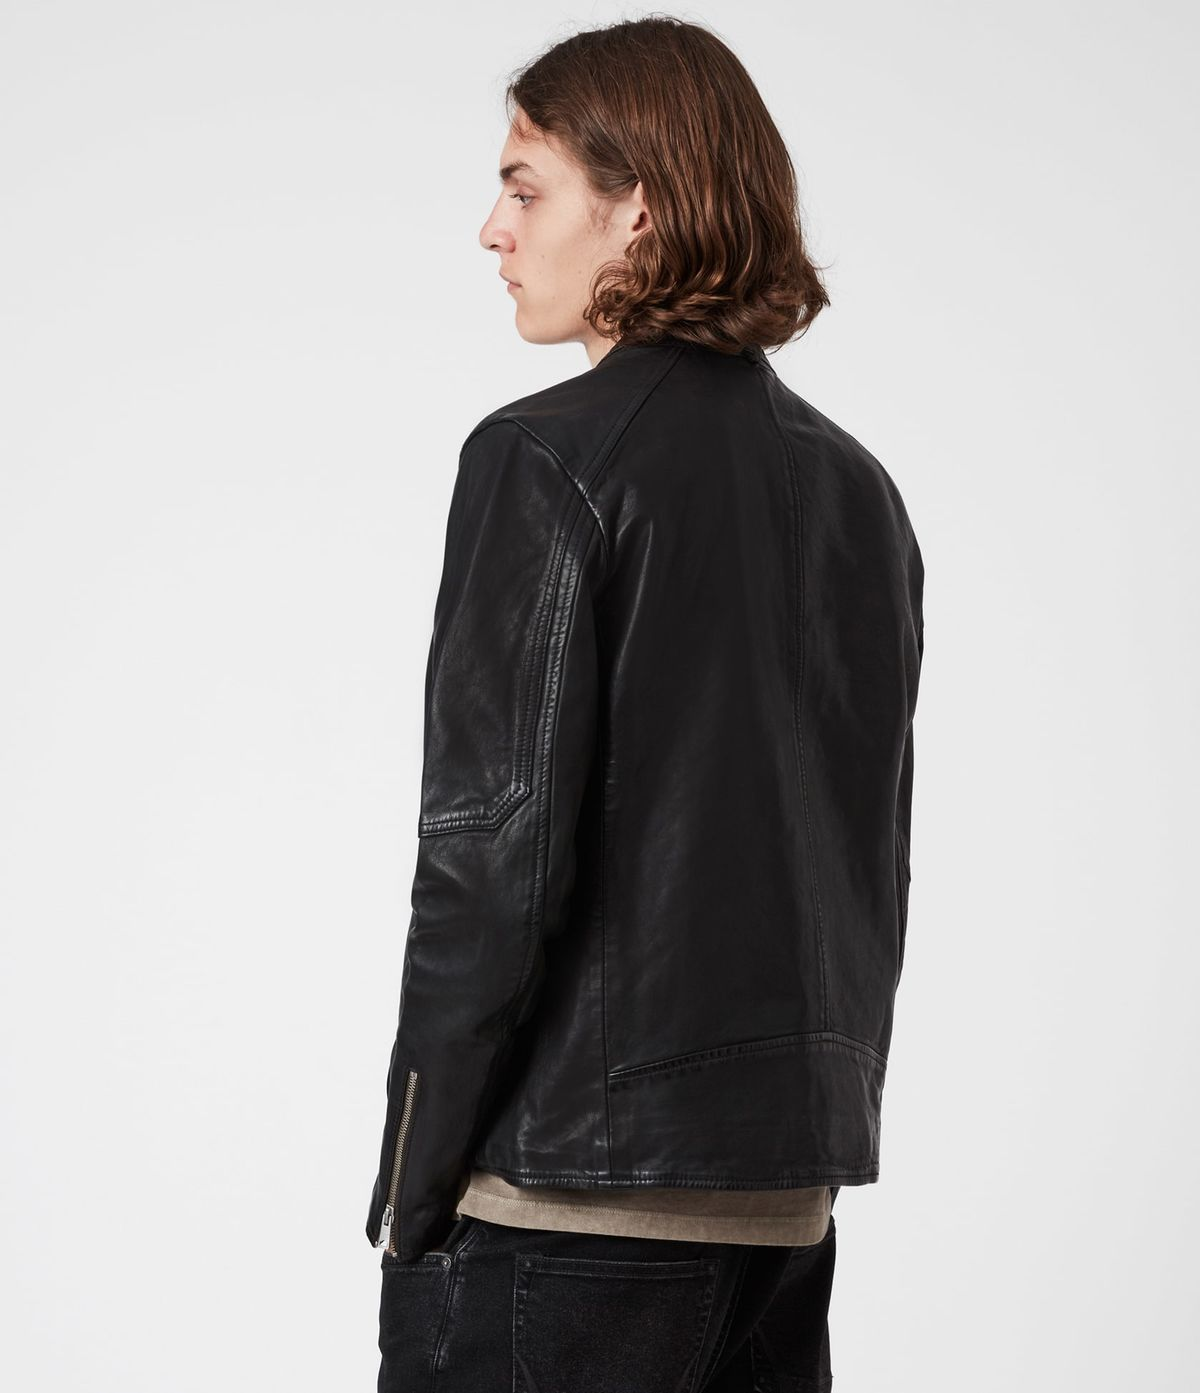 Men's Cora Leather Jacket - Back View